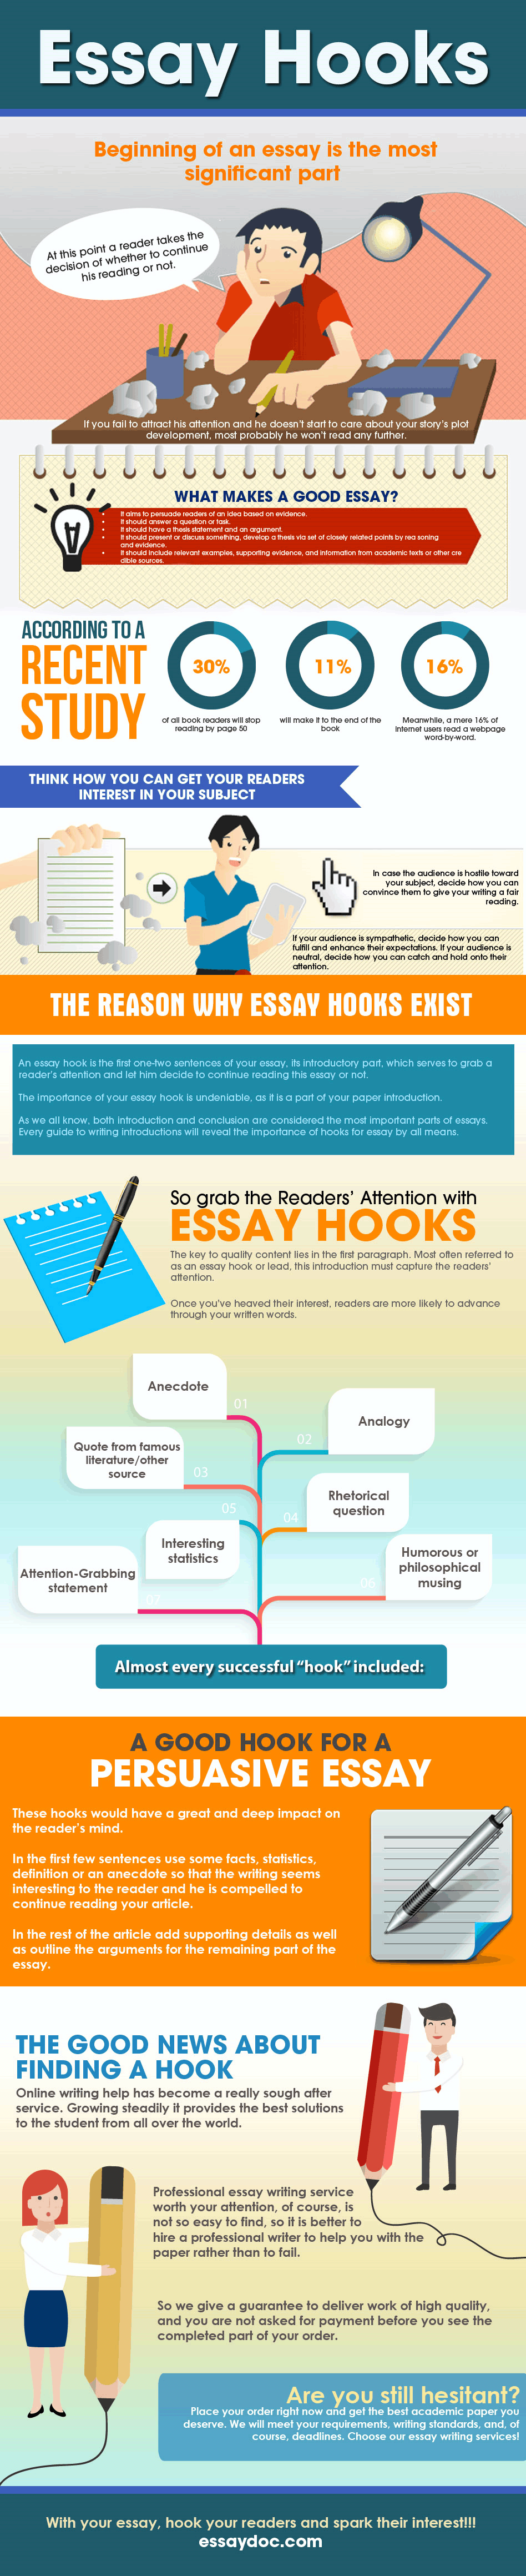 Writing a hook for an essay